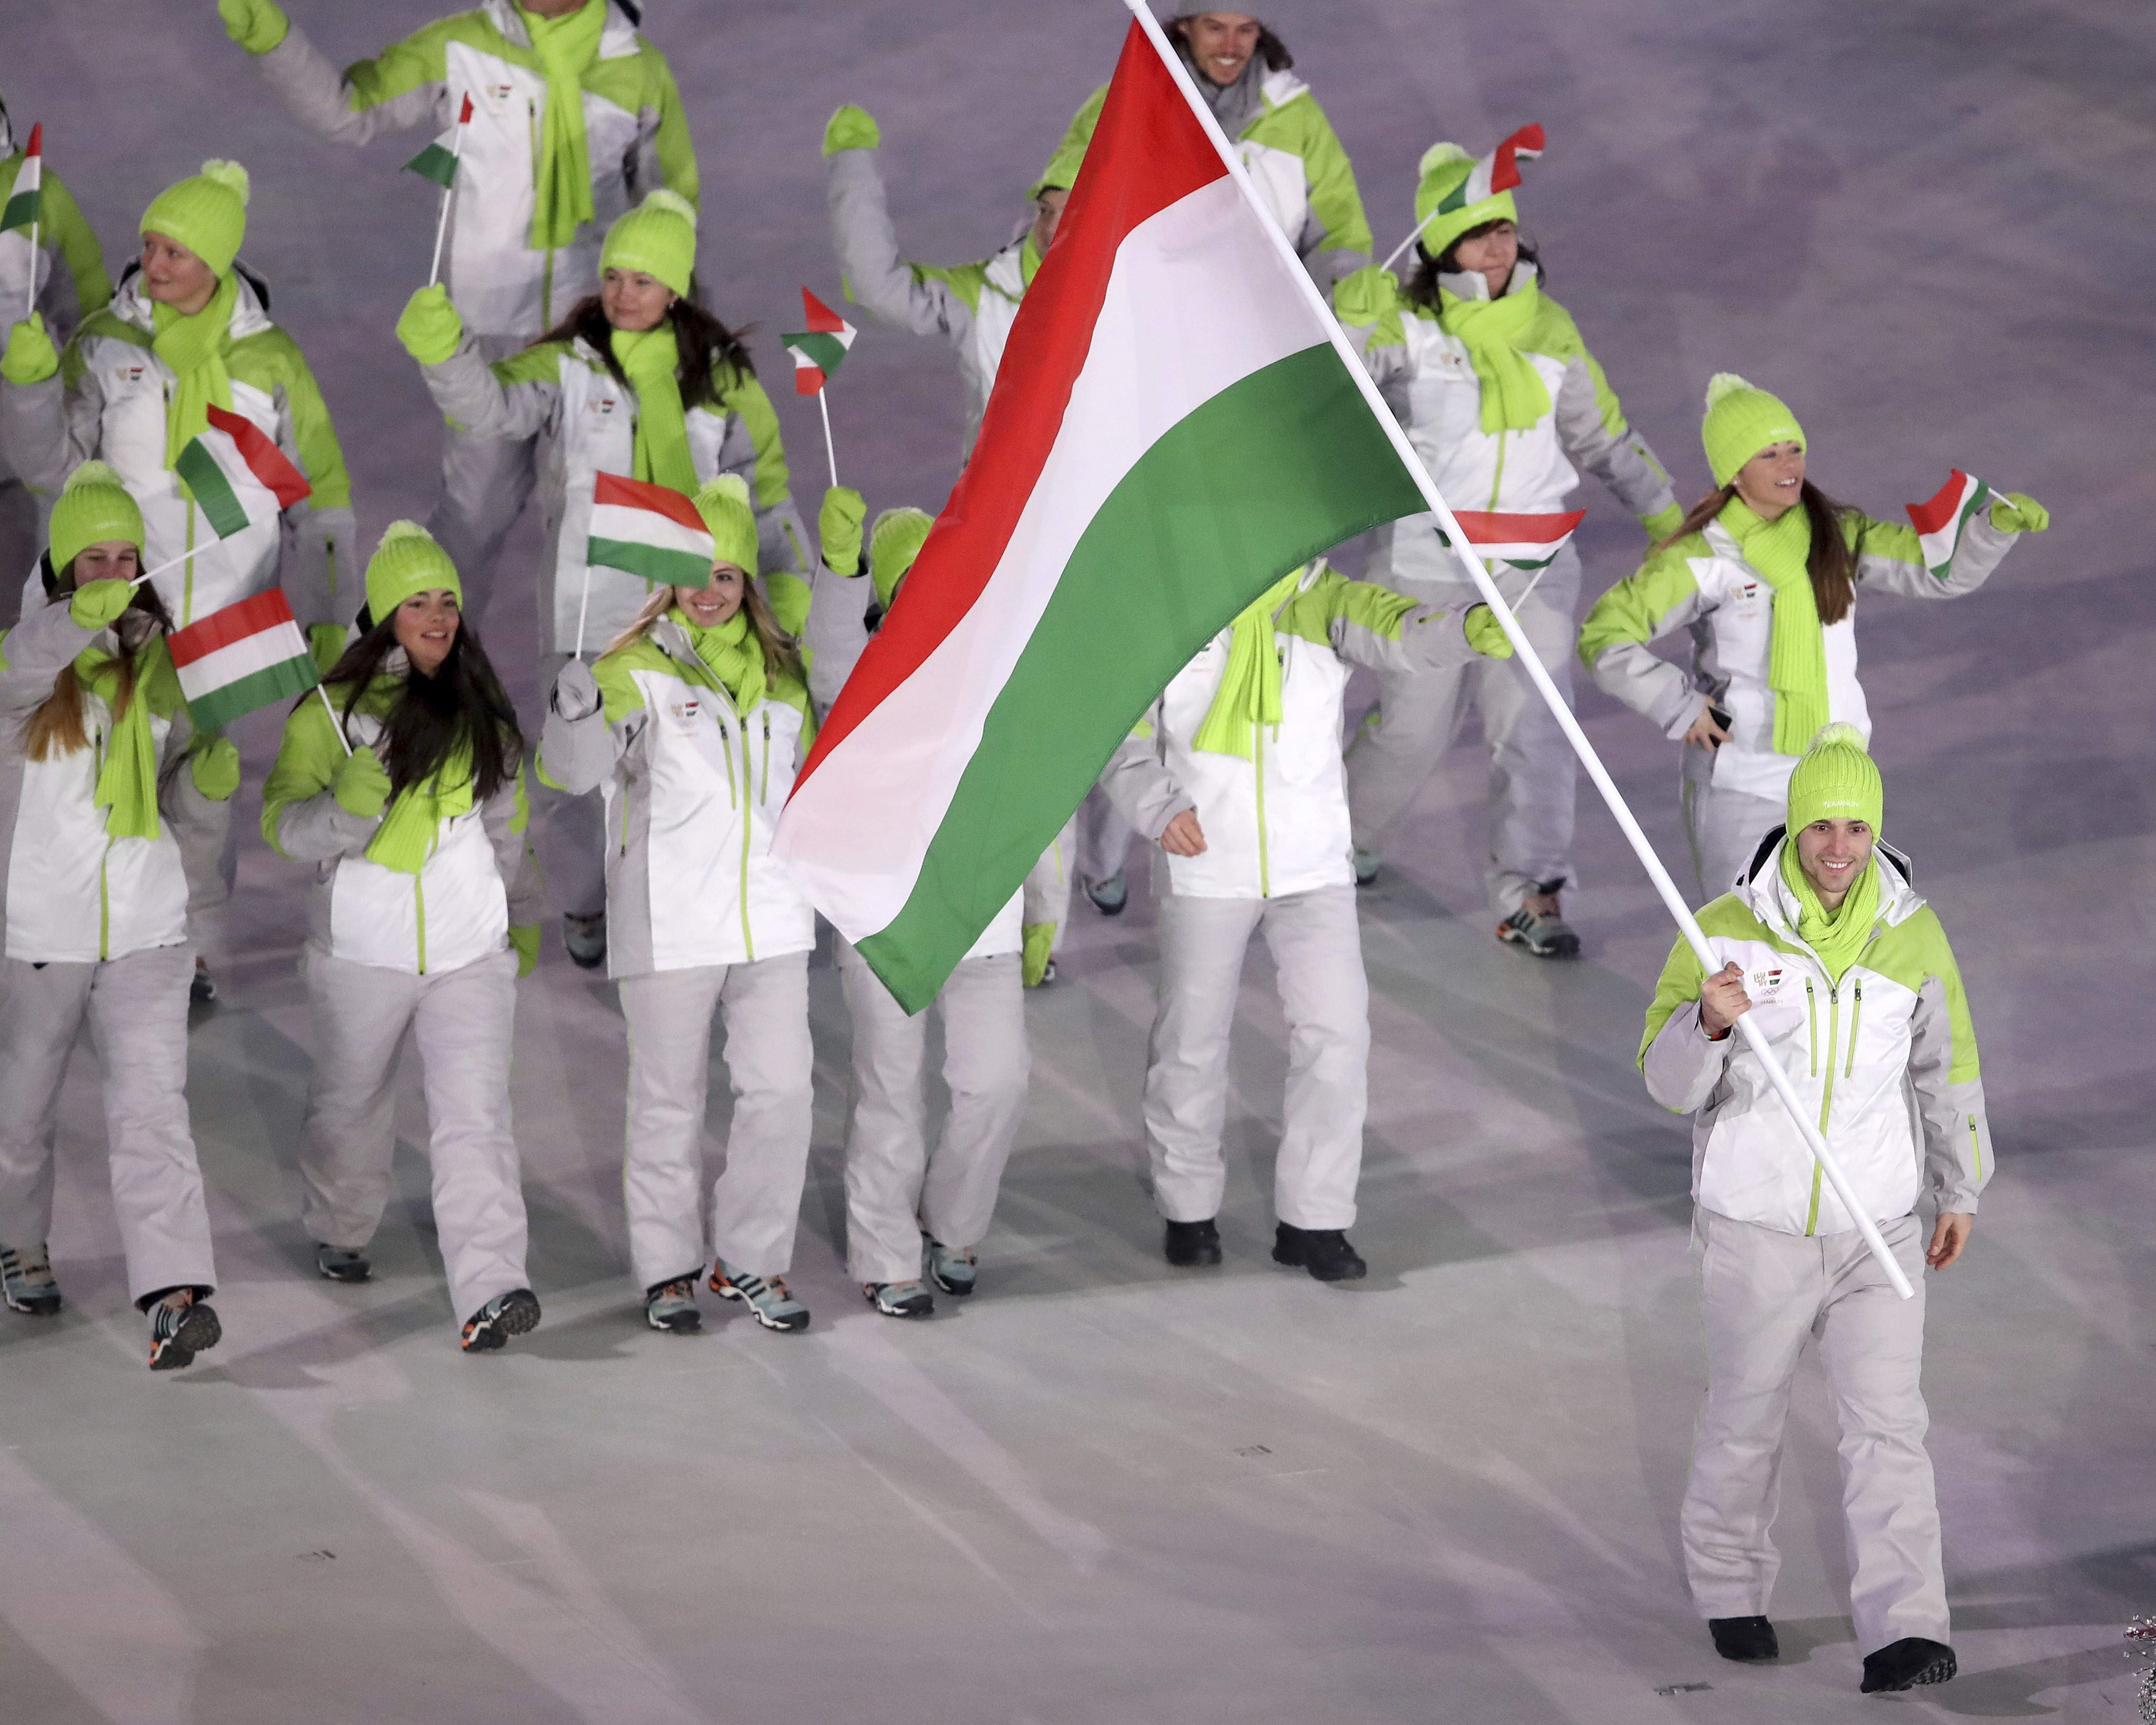 Konrad Nagy carries the flag of Hungary during the opening ceremony of the 2018 Winter Olympics in Pyeongchang, South Korea, Friday, Feb. 9, 2018. (Sean Haffey/Pool Photo via AP)